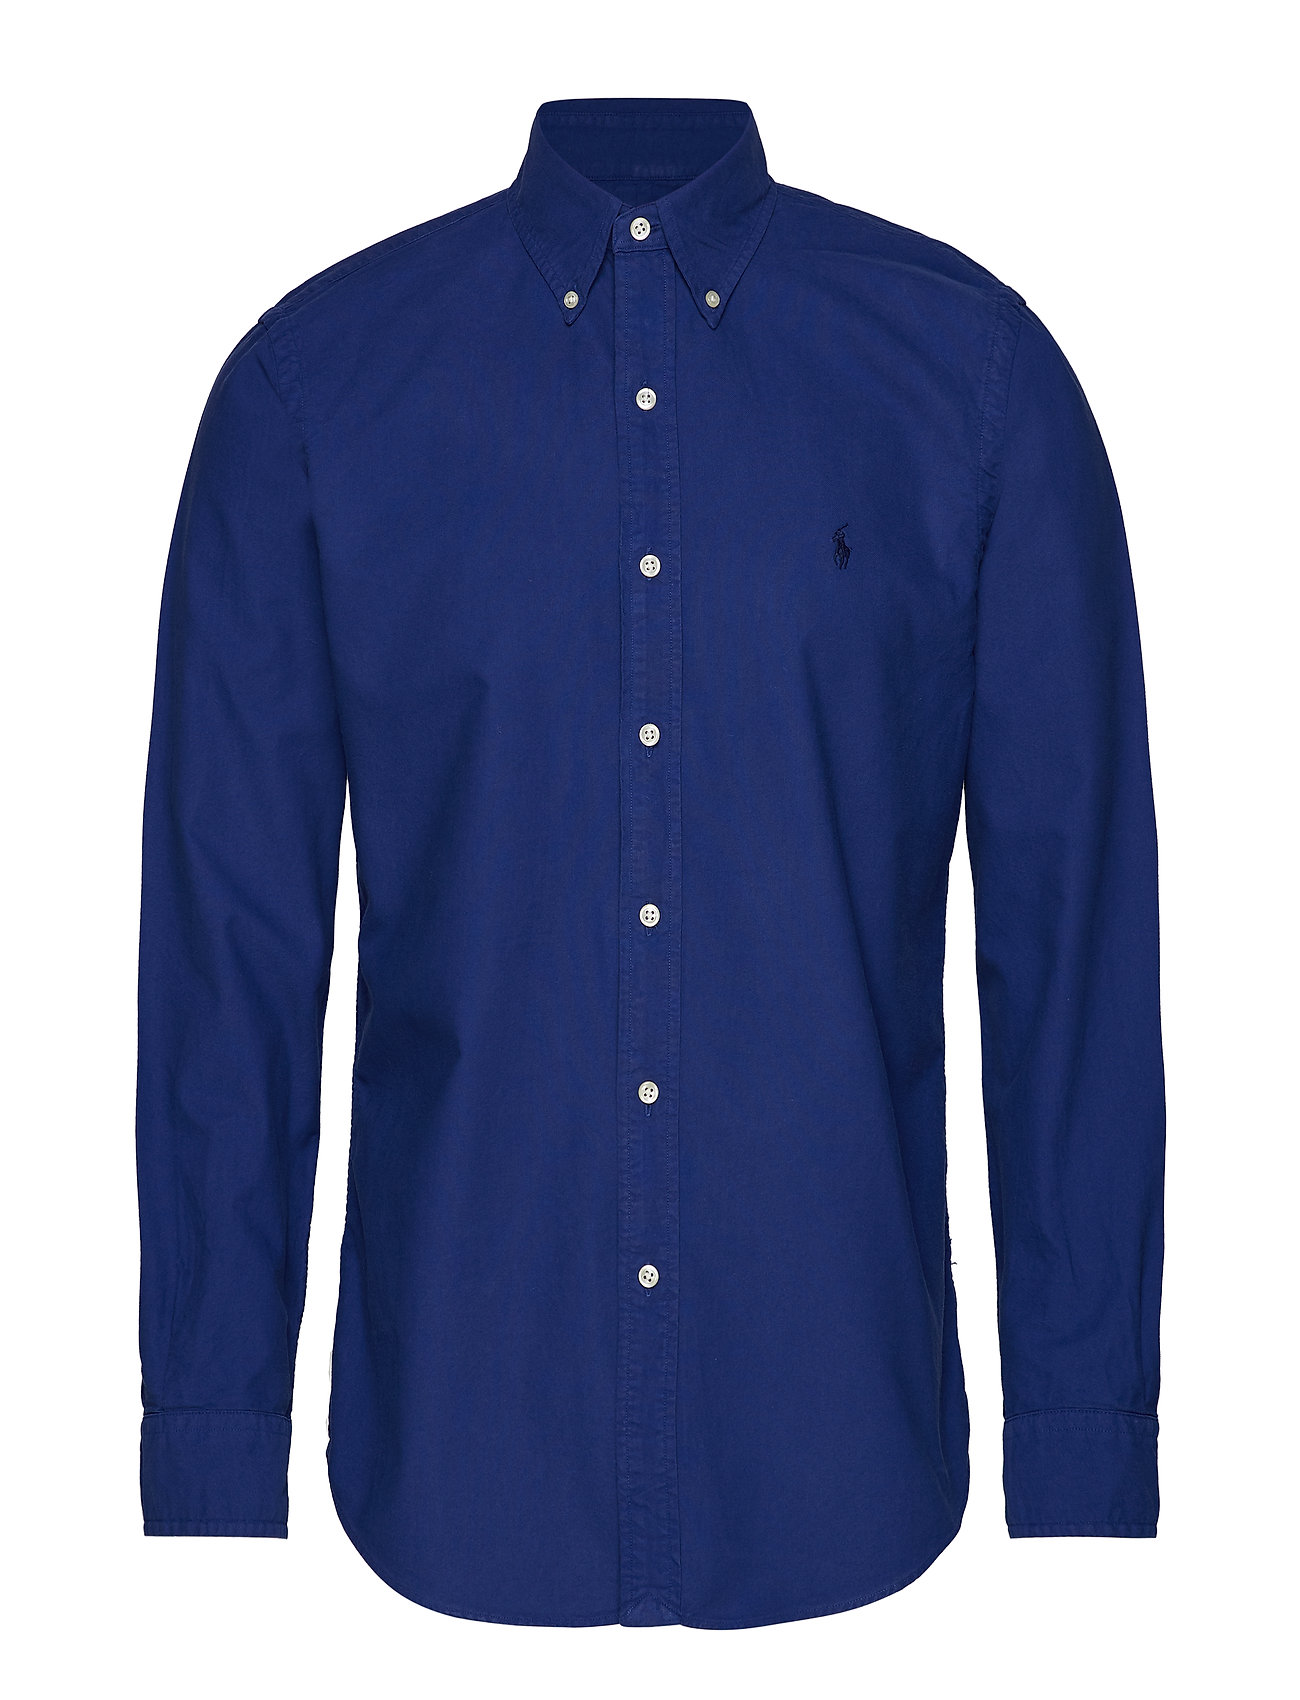 Polo Ralph Lauren Custom Fit Cotton Oxford Shirt - BLUE YACHT